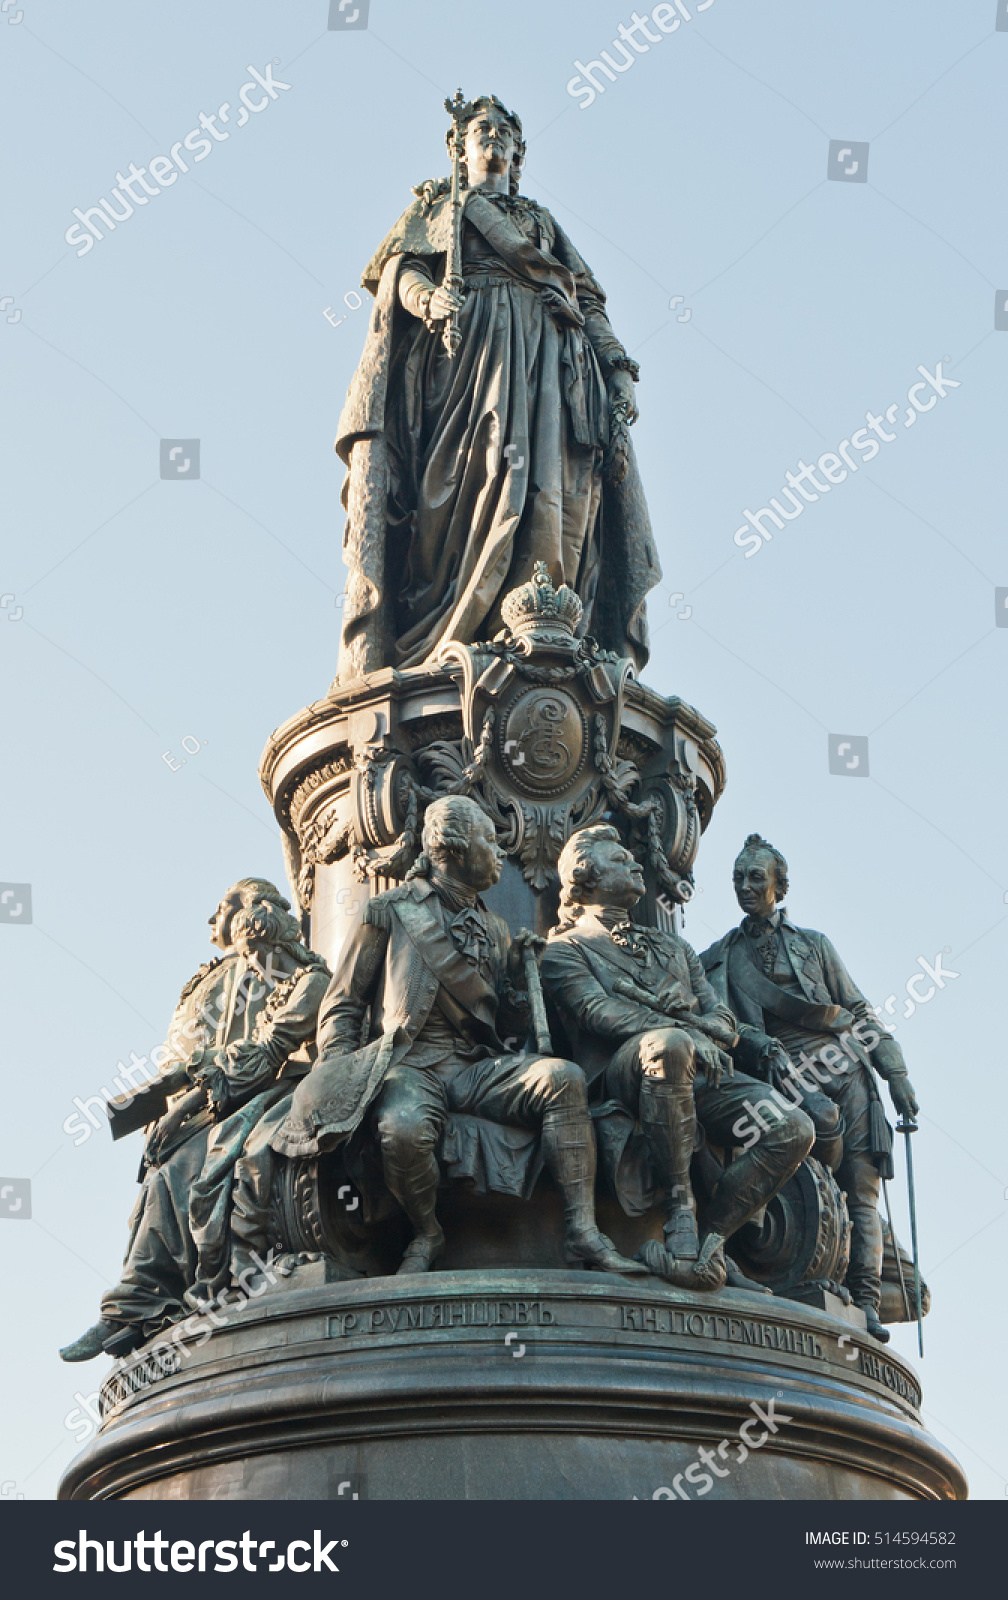 Monument to Catherine the Great in St. Petersburg: description, photo 58